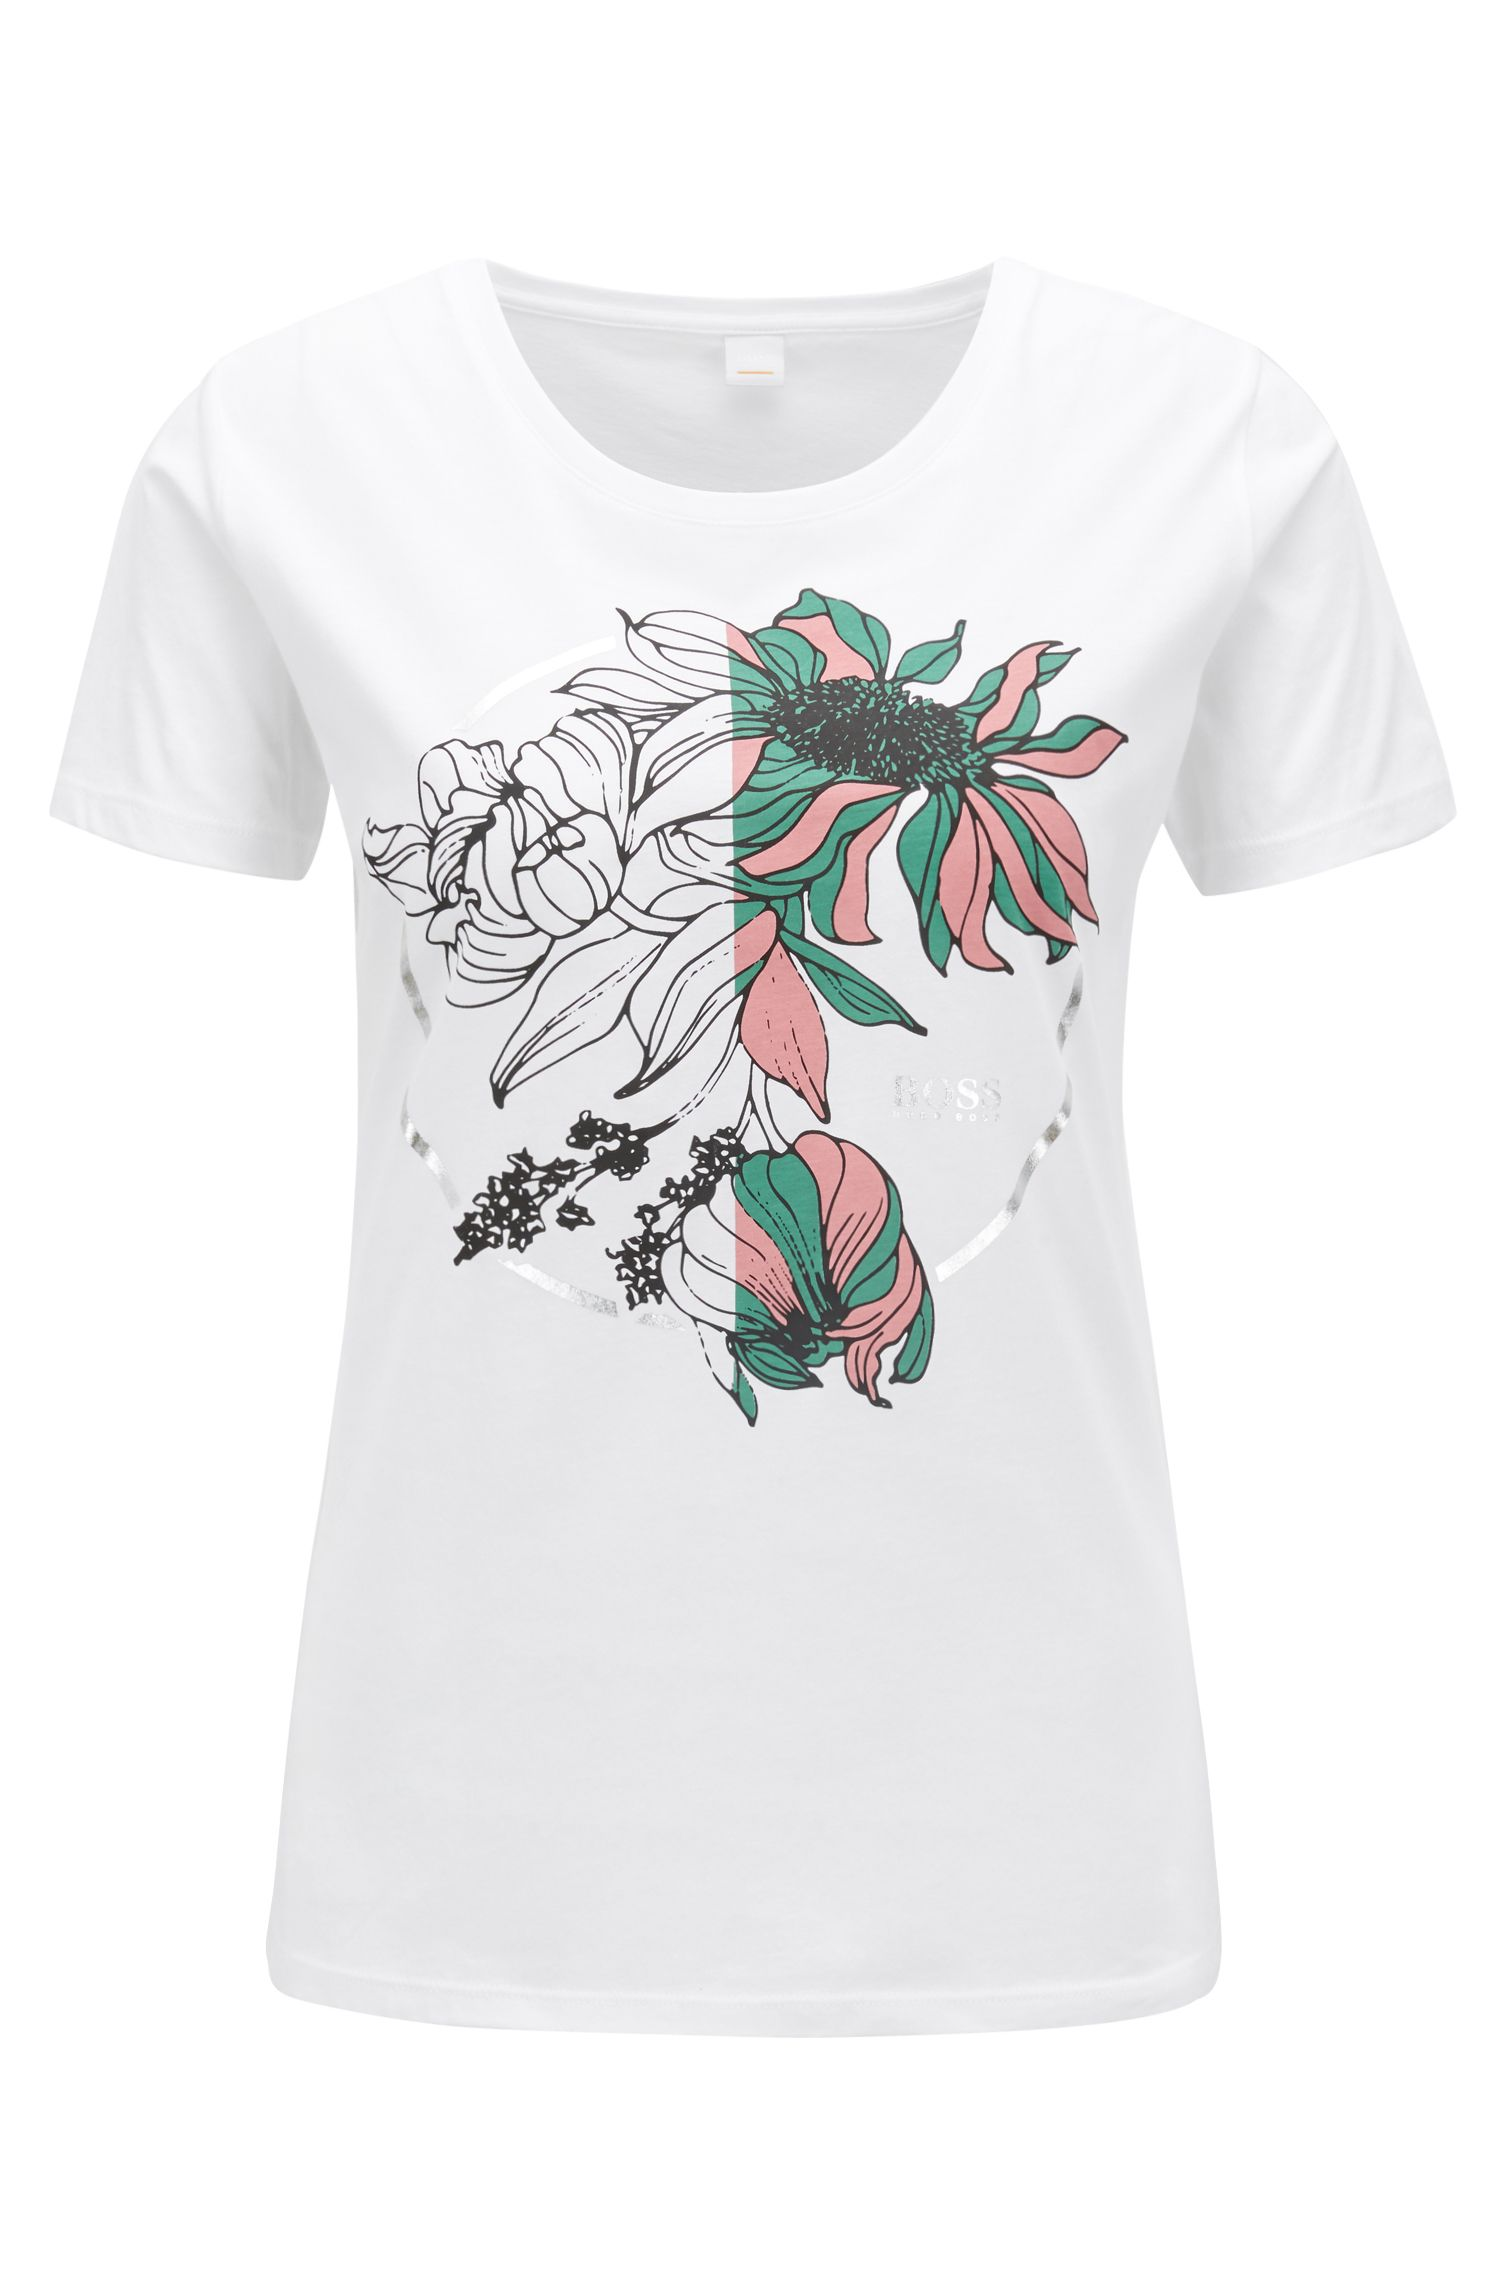 Slim-fit T-shirt in cotton with placement flower print